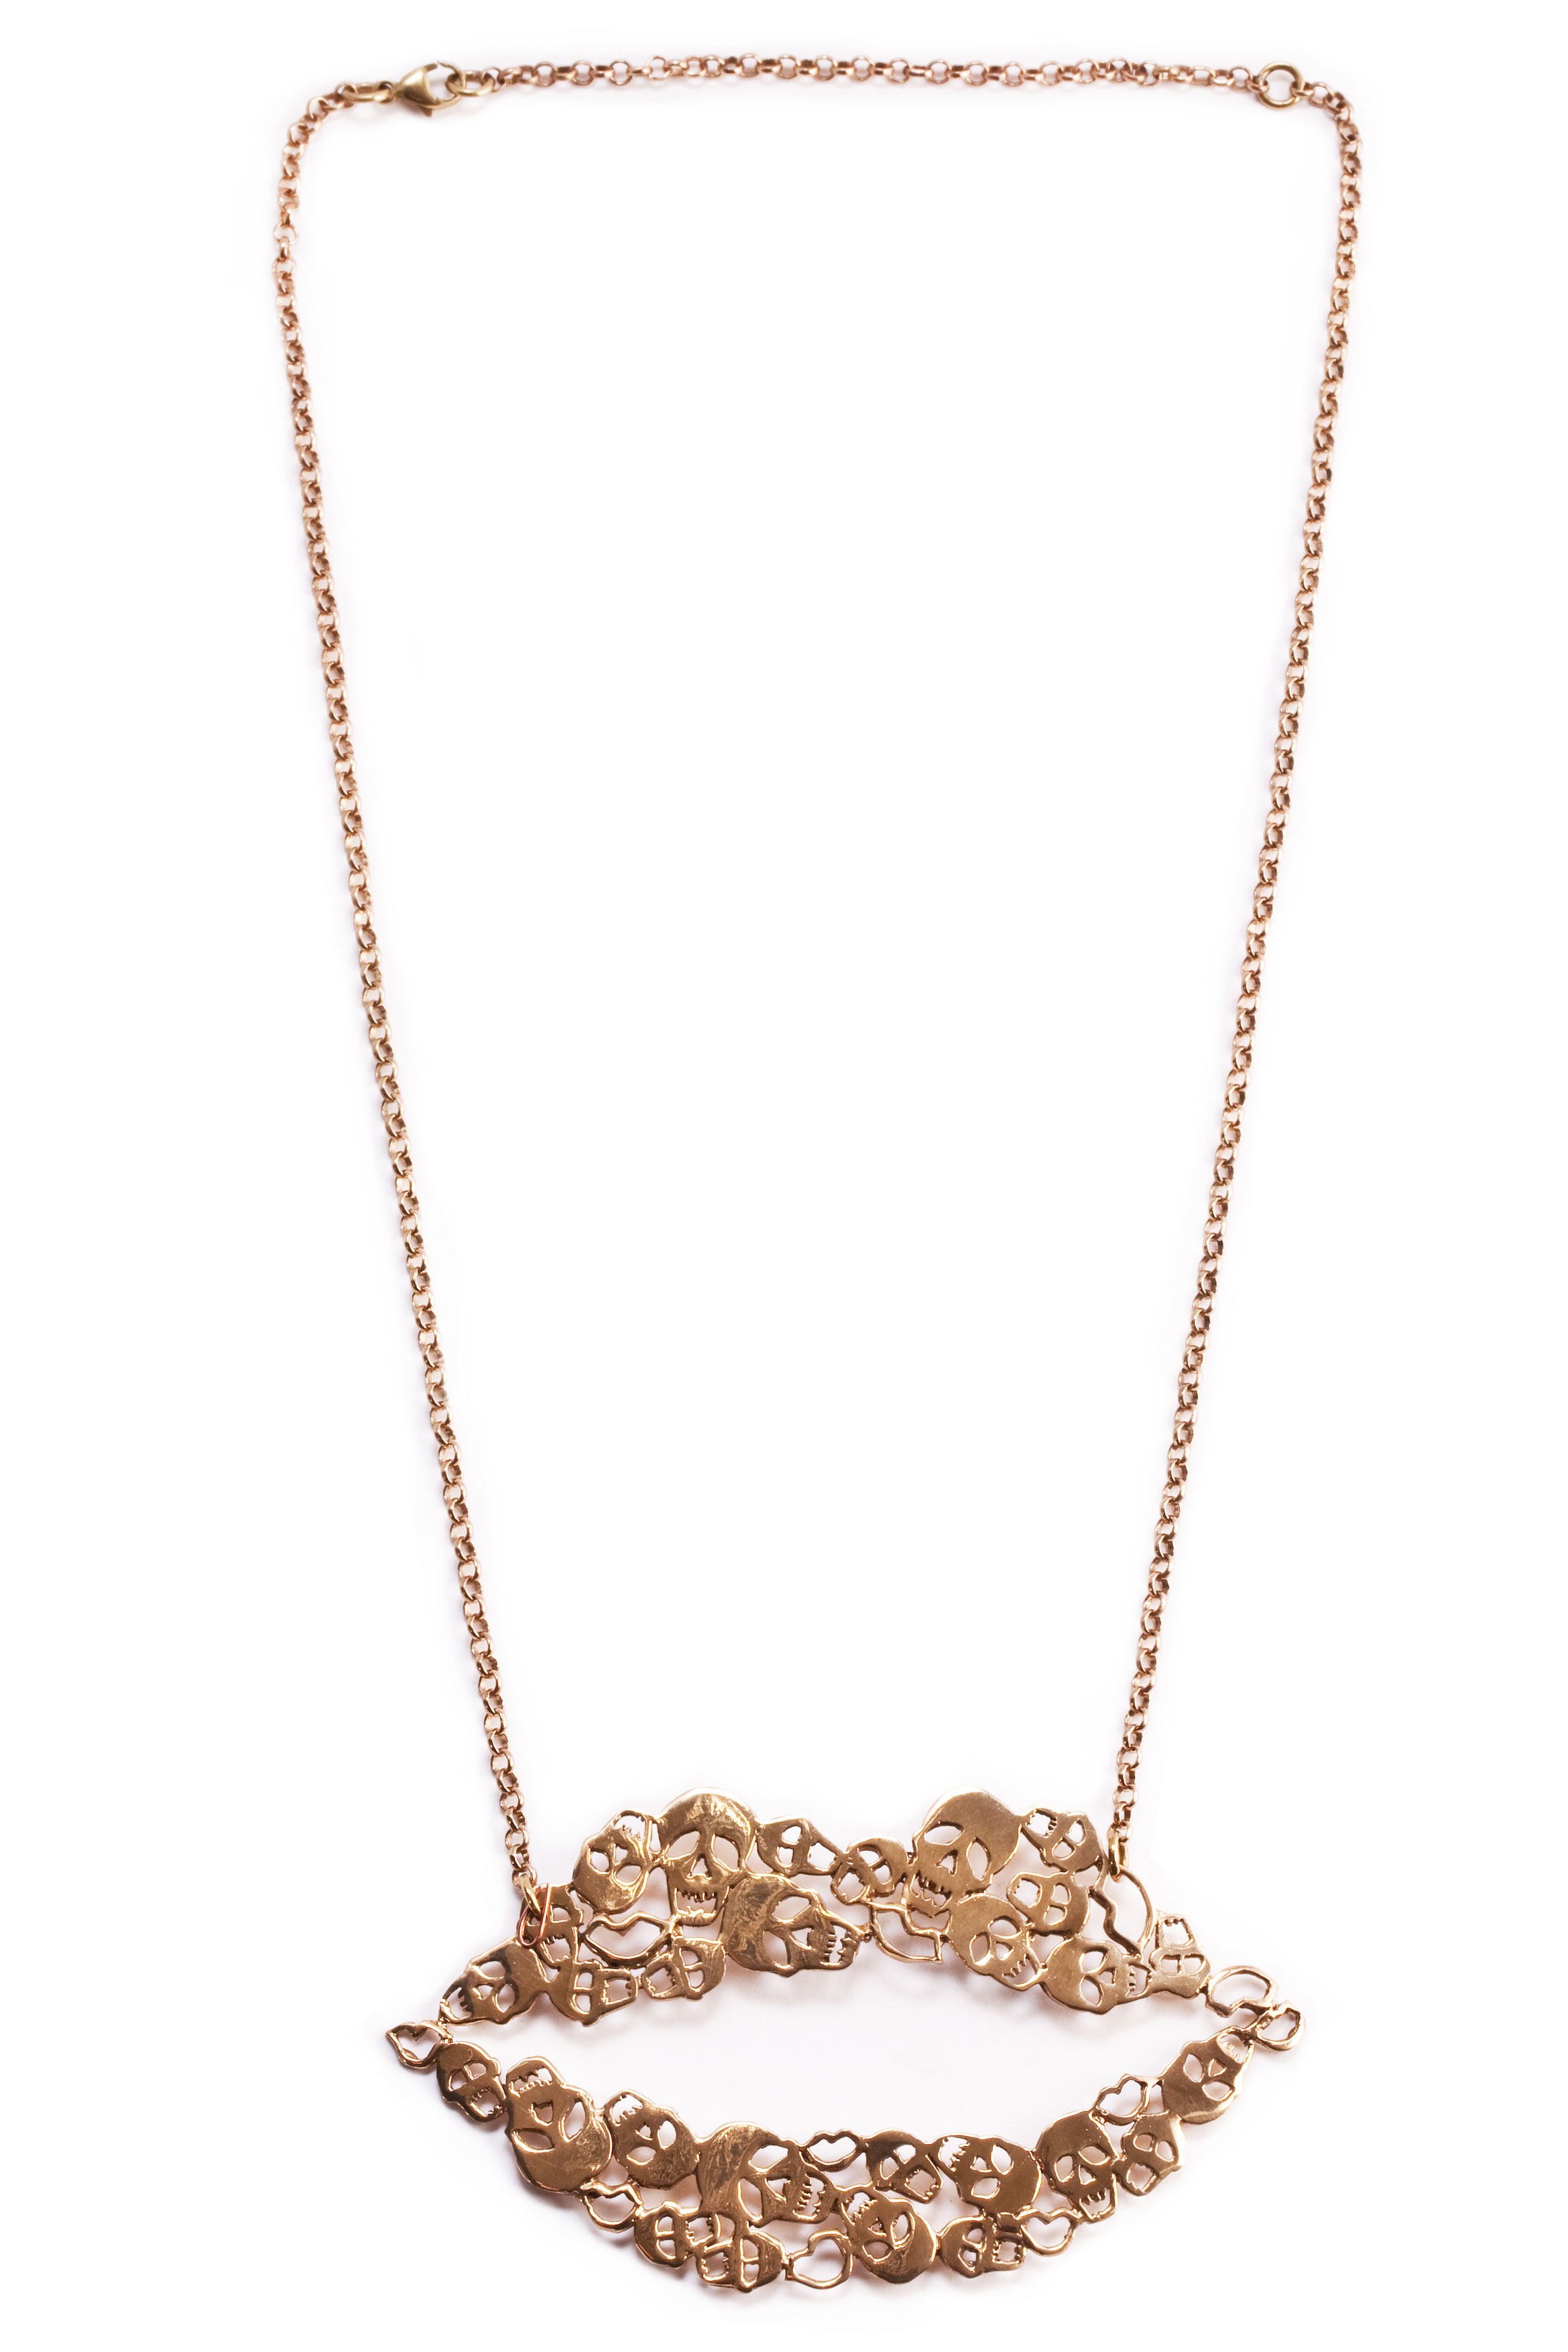 Bronze mouth necklace with skulls